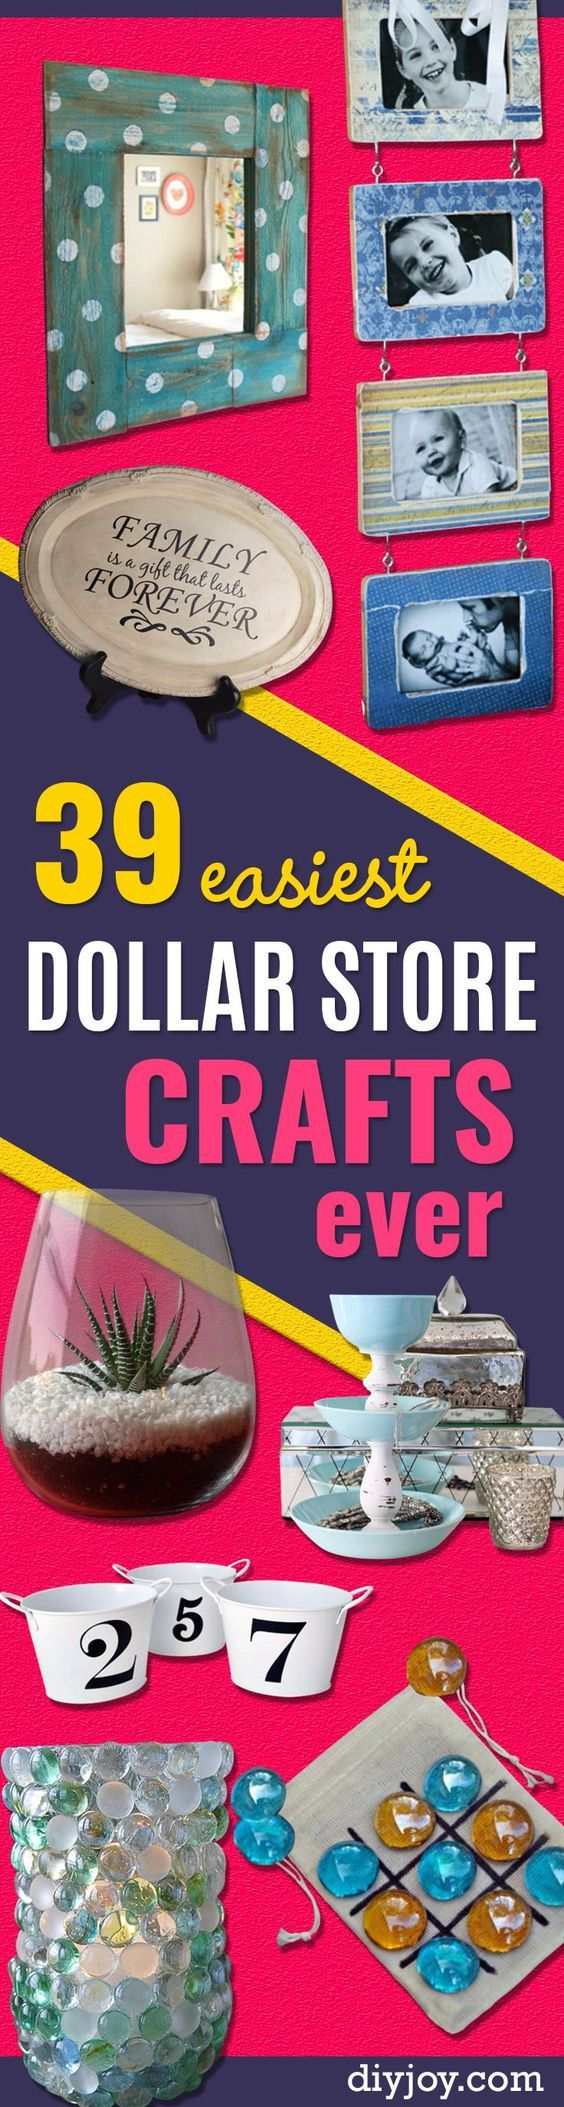 Best 25 do it yourself crafts ideas on pinterest diy for Do it yourself projects to sell